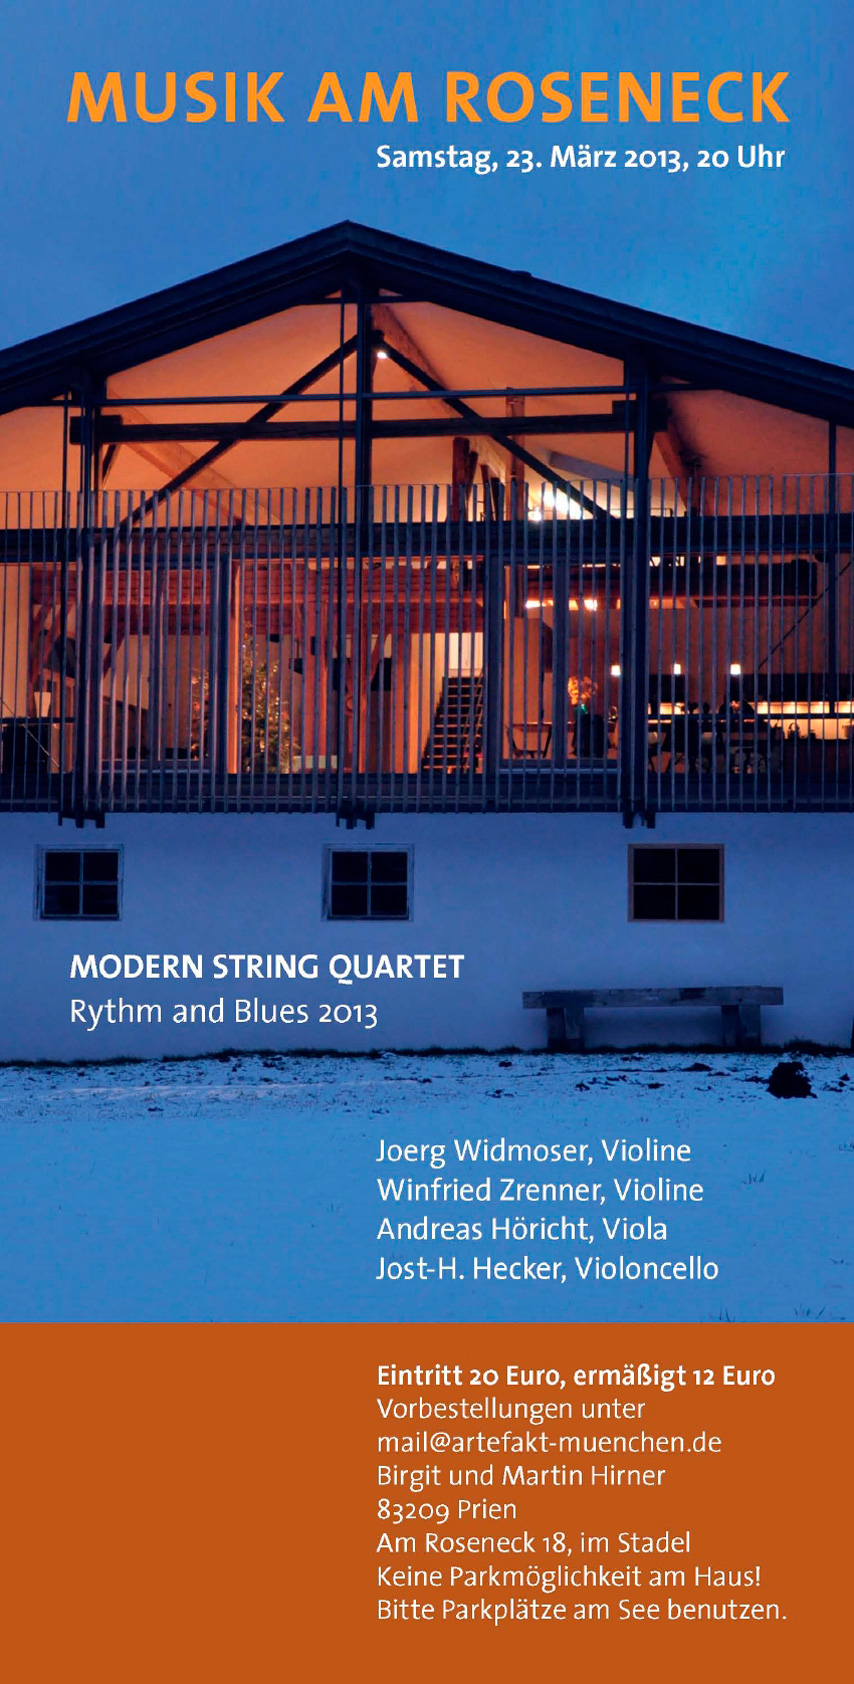 Konzert 1: Modern String Quartett | Salon21